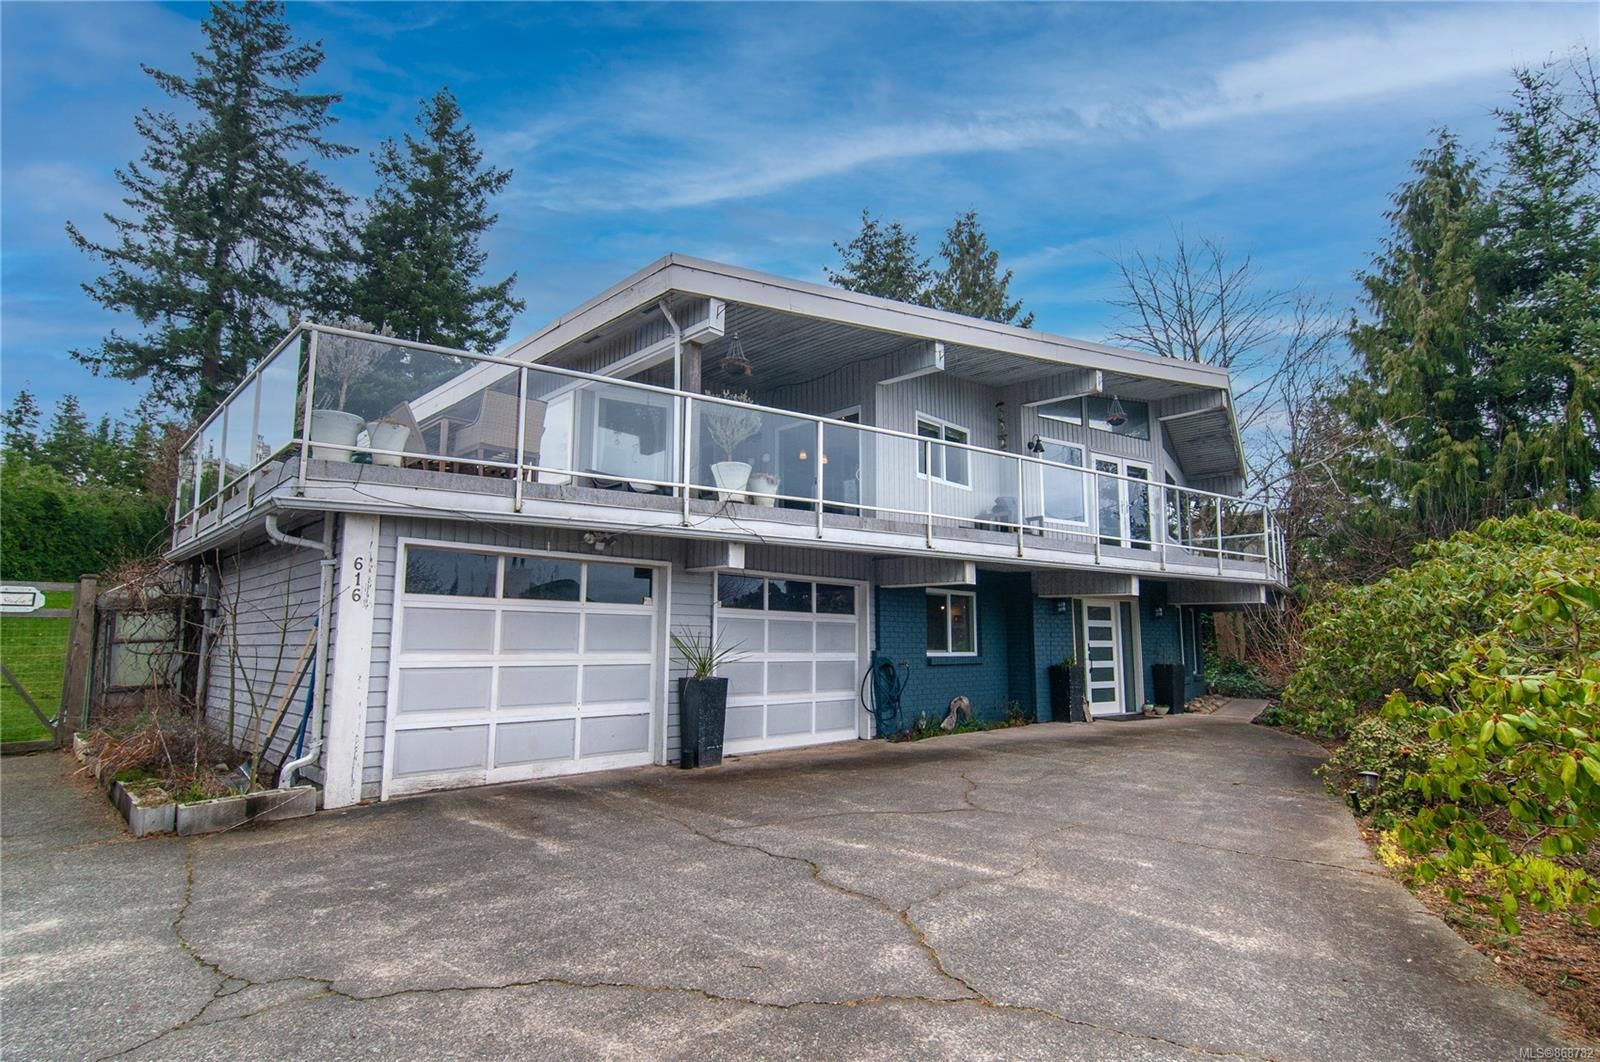 Main Photo: 616 Cormorant Pl in : CR Campbell River Central House for sale (Campbell River)  : MLS®# 868782